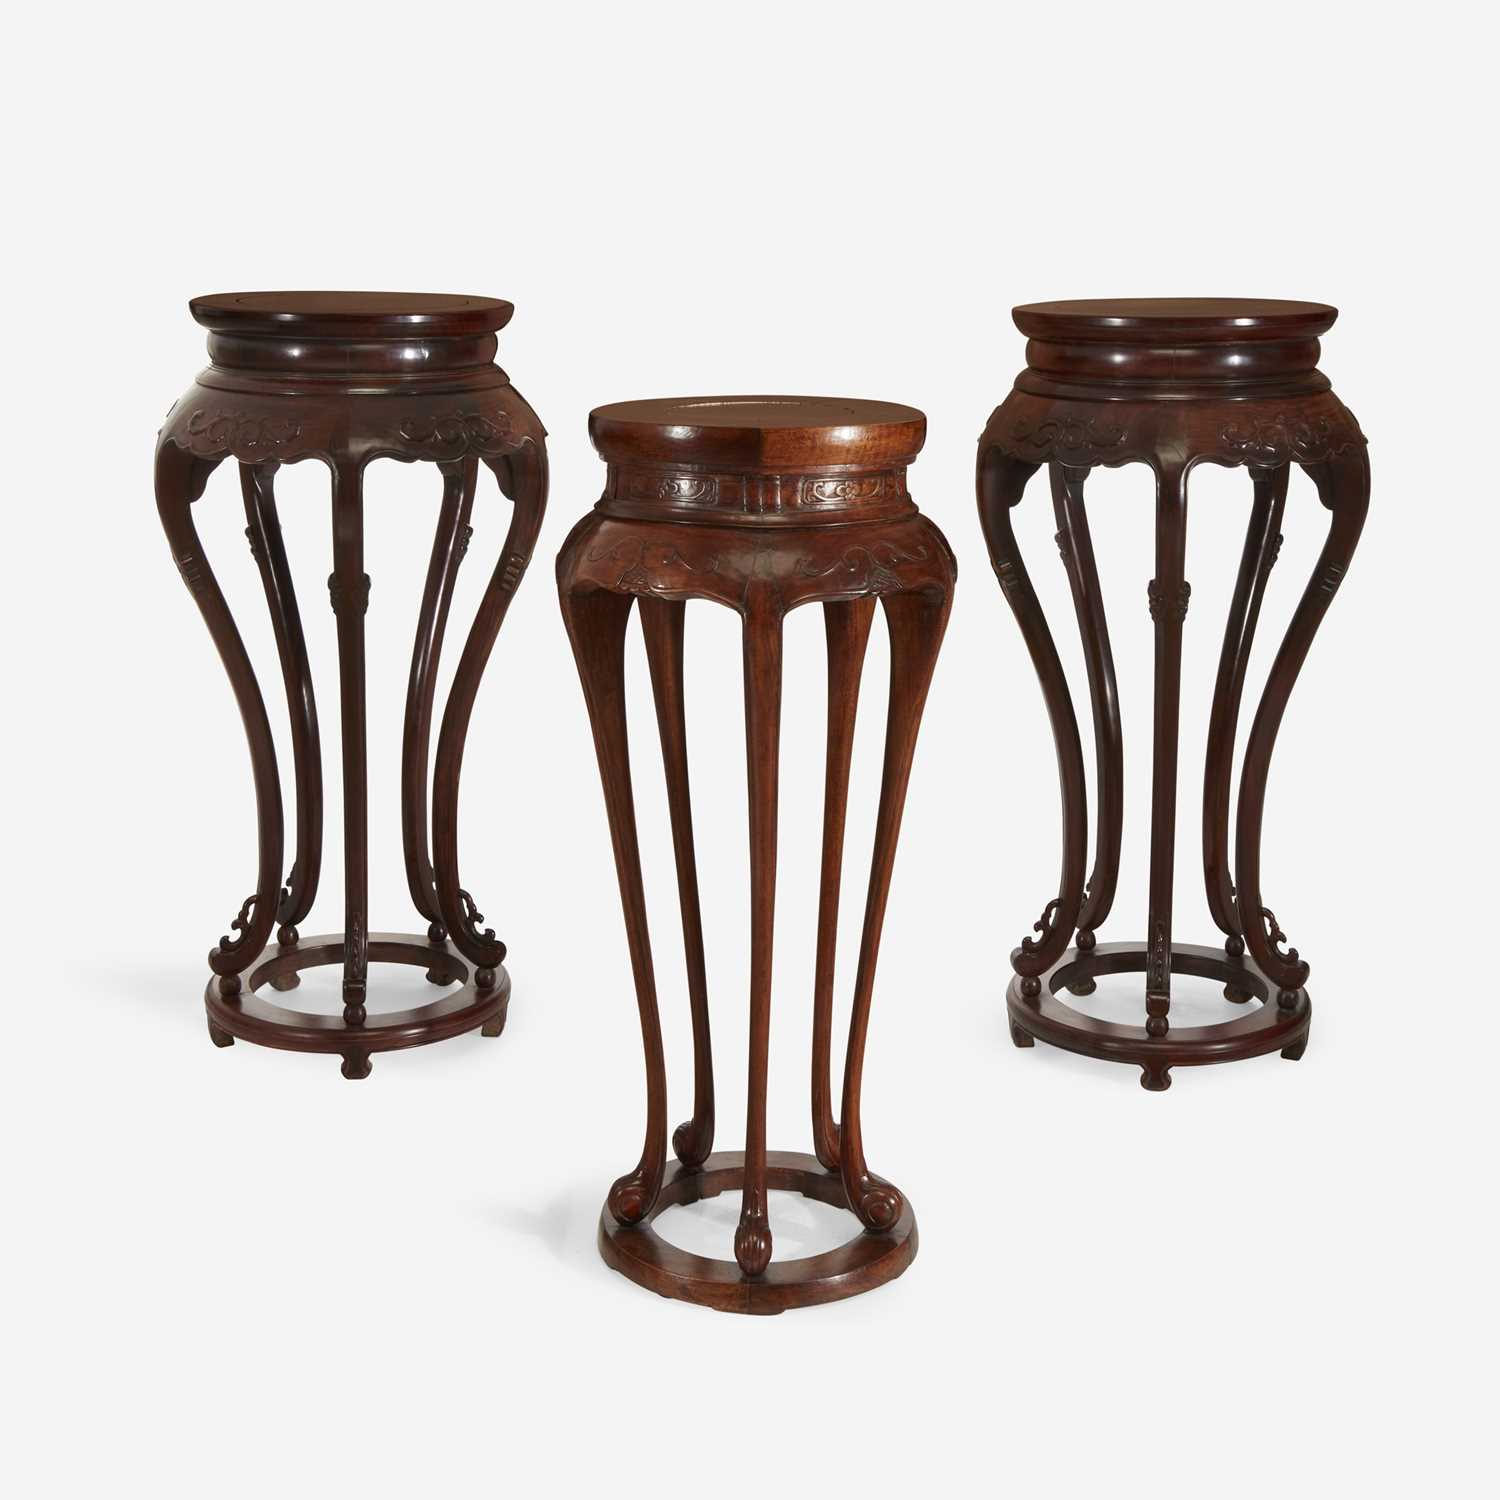 Lot 53 - A pair of Chinese hardwood circular stands, together with a similar Chinese carved hardwood circular stand